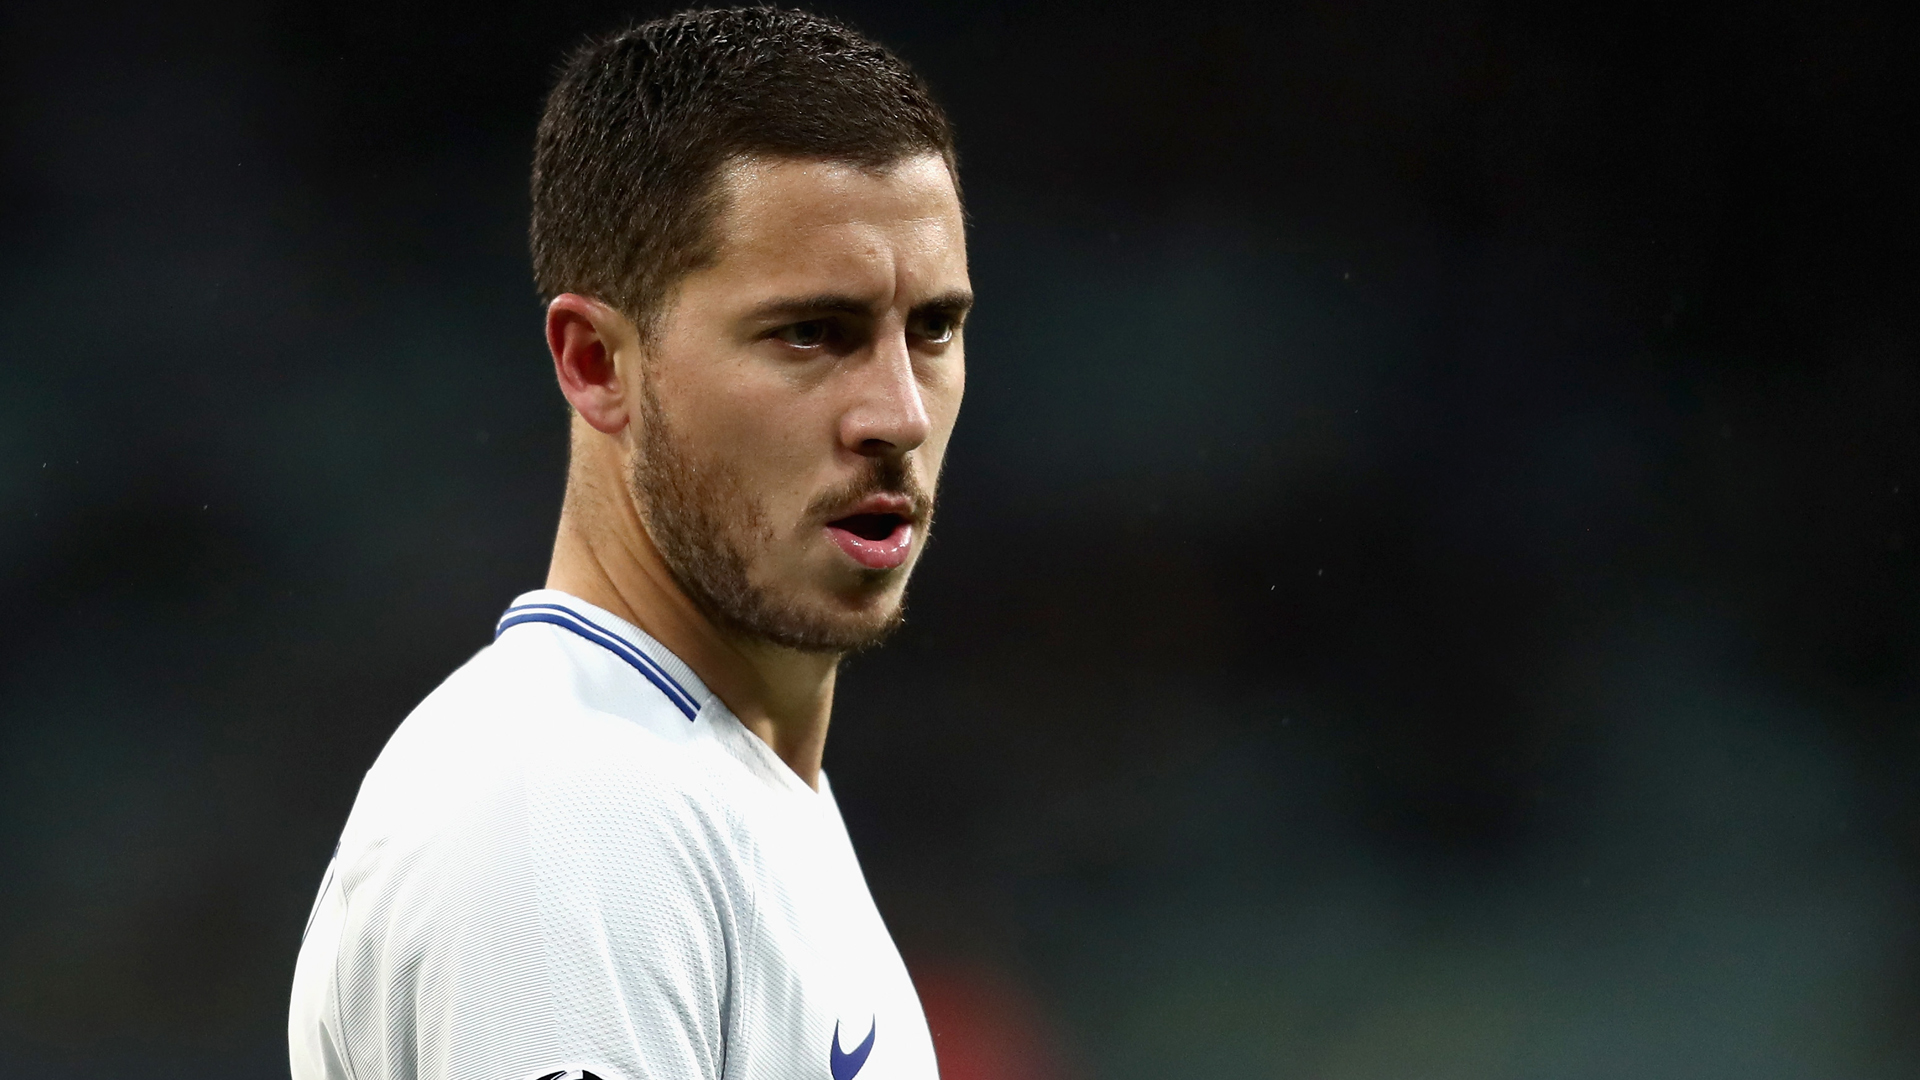 Chelsea star Hazard sends warning to Premier League rivals